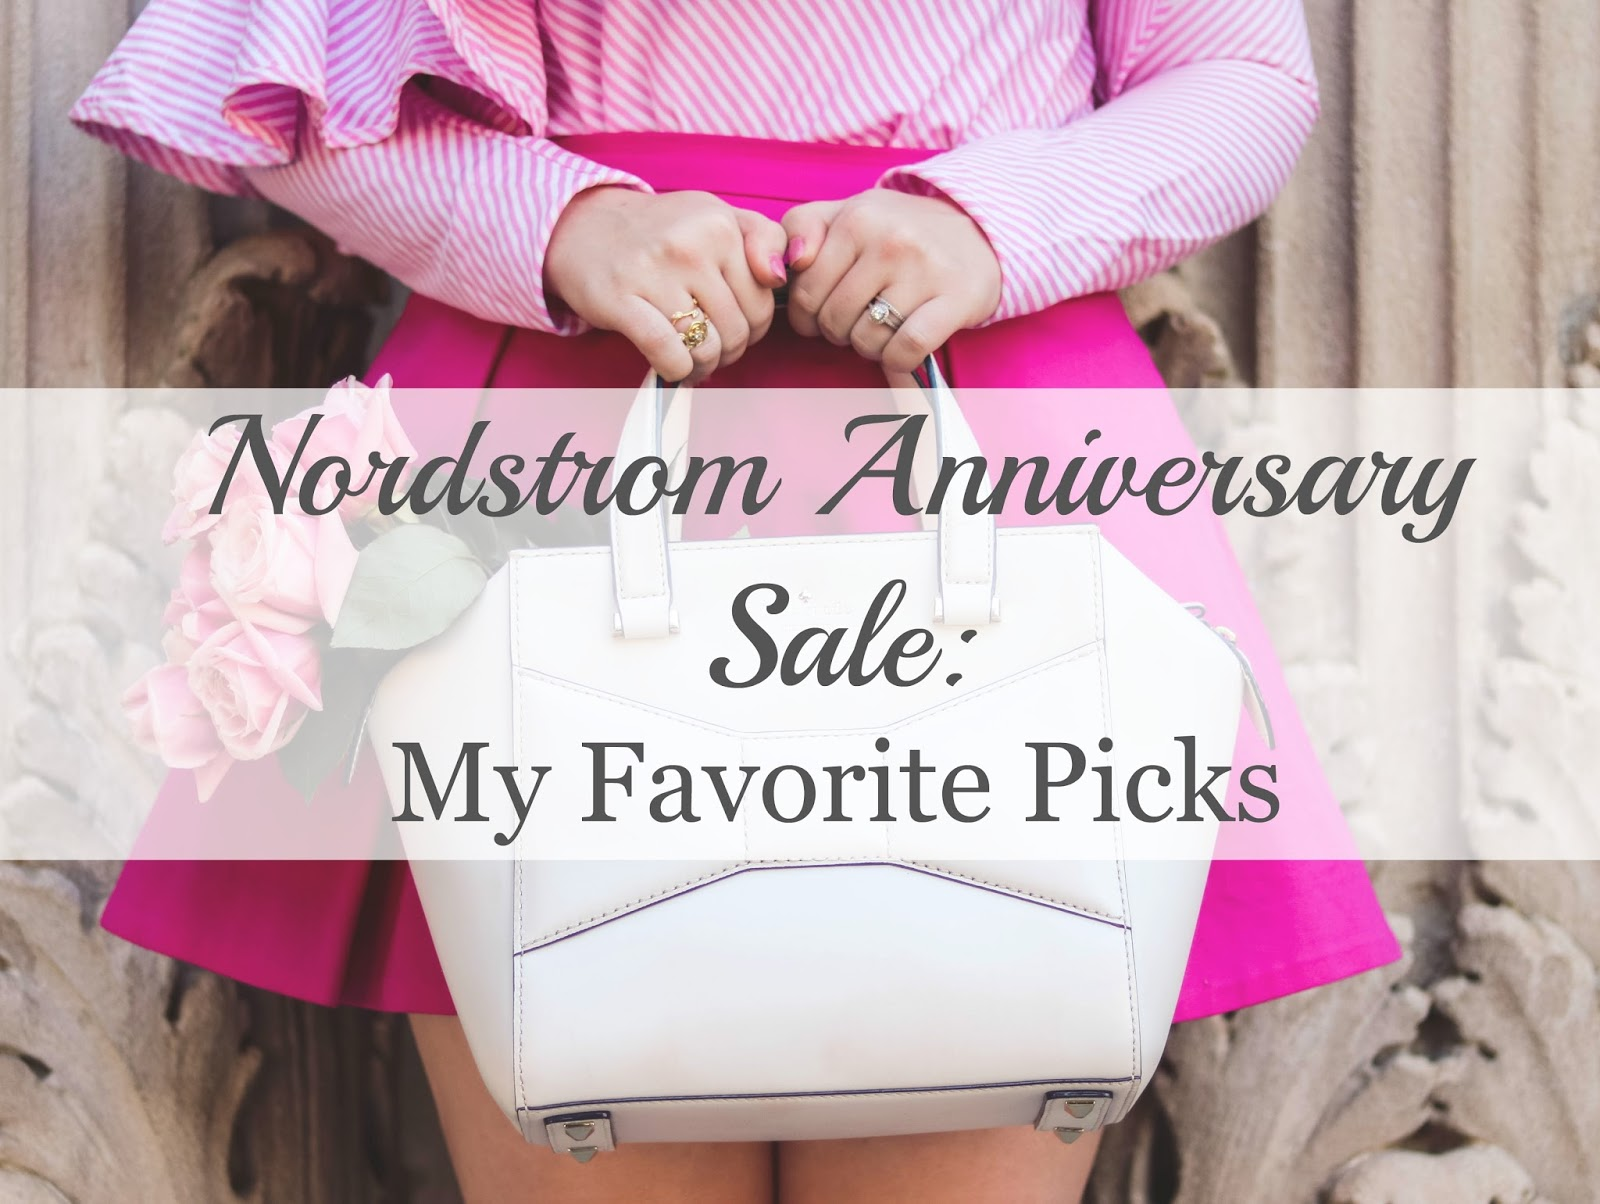 Nordstrom Anniversary Sale: My Favorite Picks